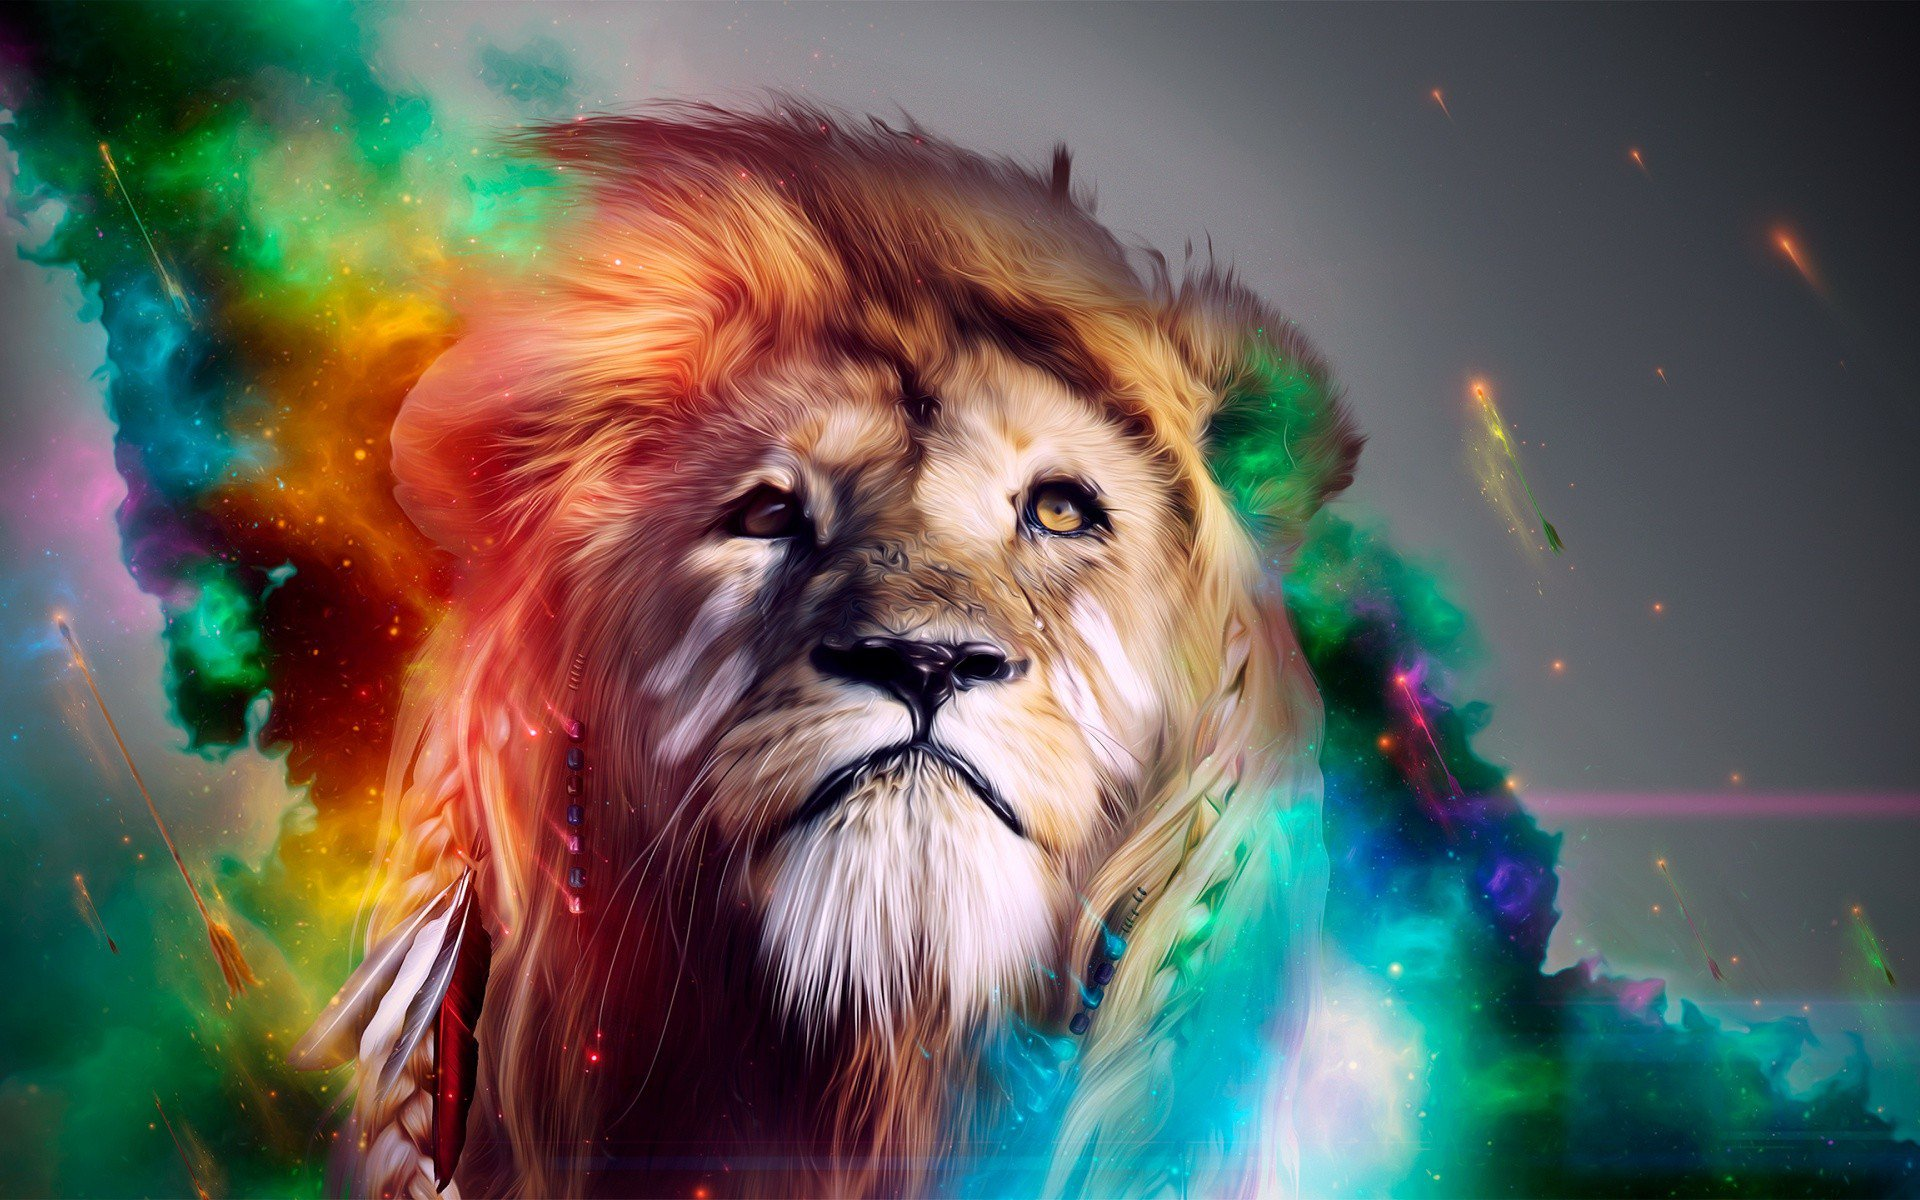 Lion abstract 4k hd abstract 4k wallpapers images - Lion 4k wallpaper for mobile ...